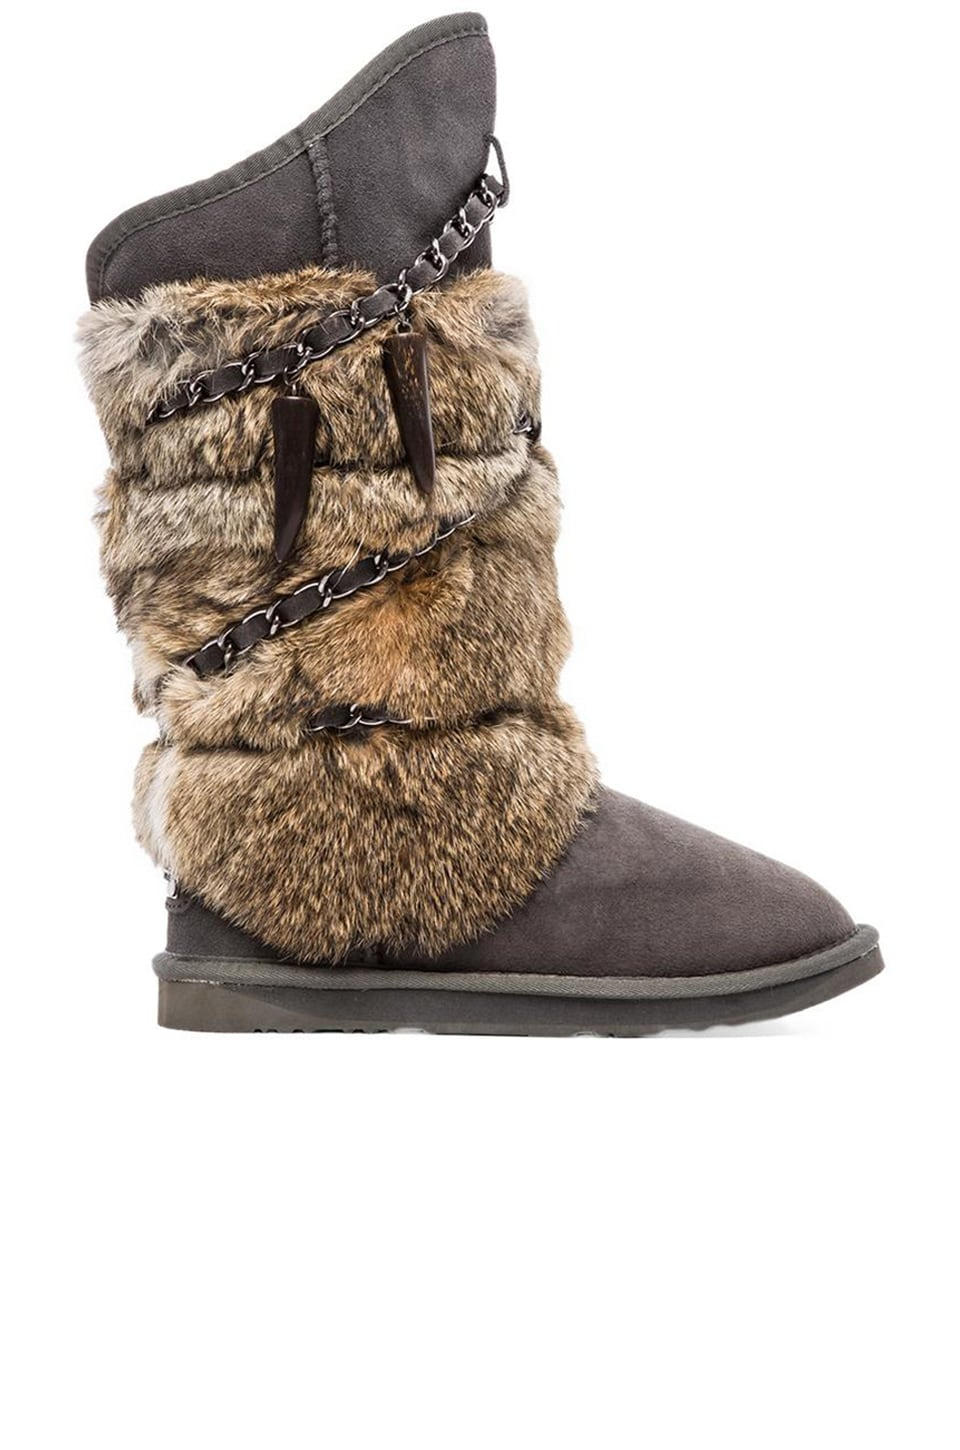 Australia Luxe Collective Rabbit Atilla Fur Boot in Grey